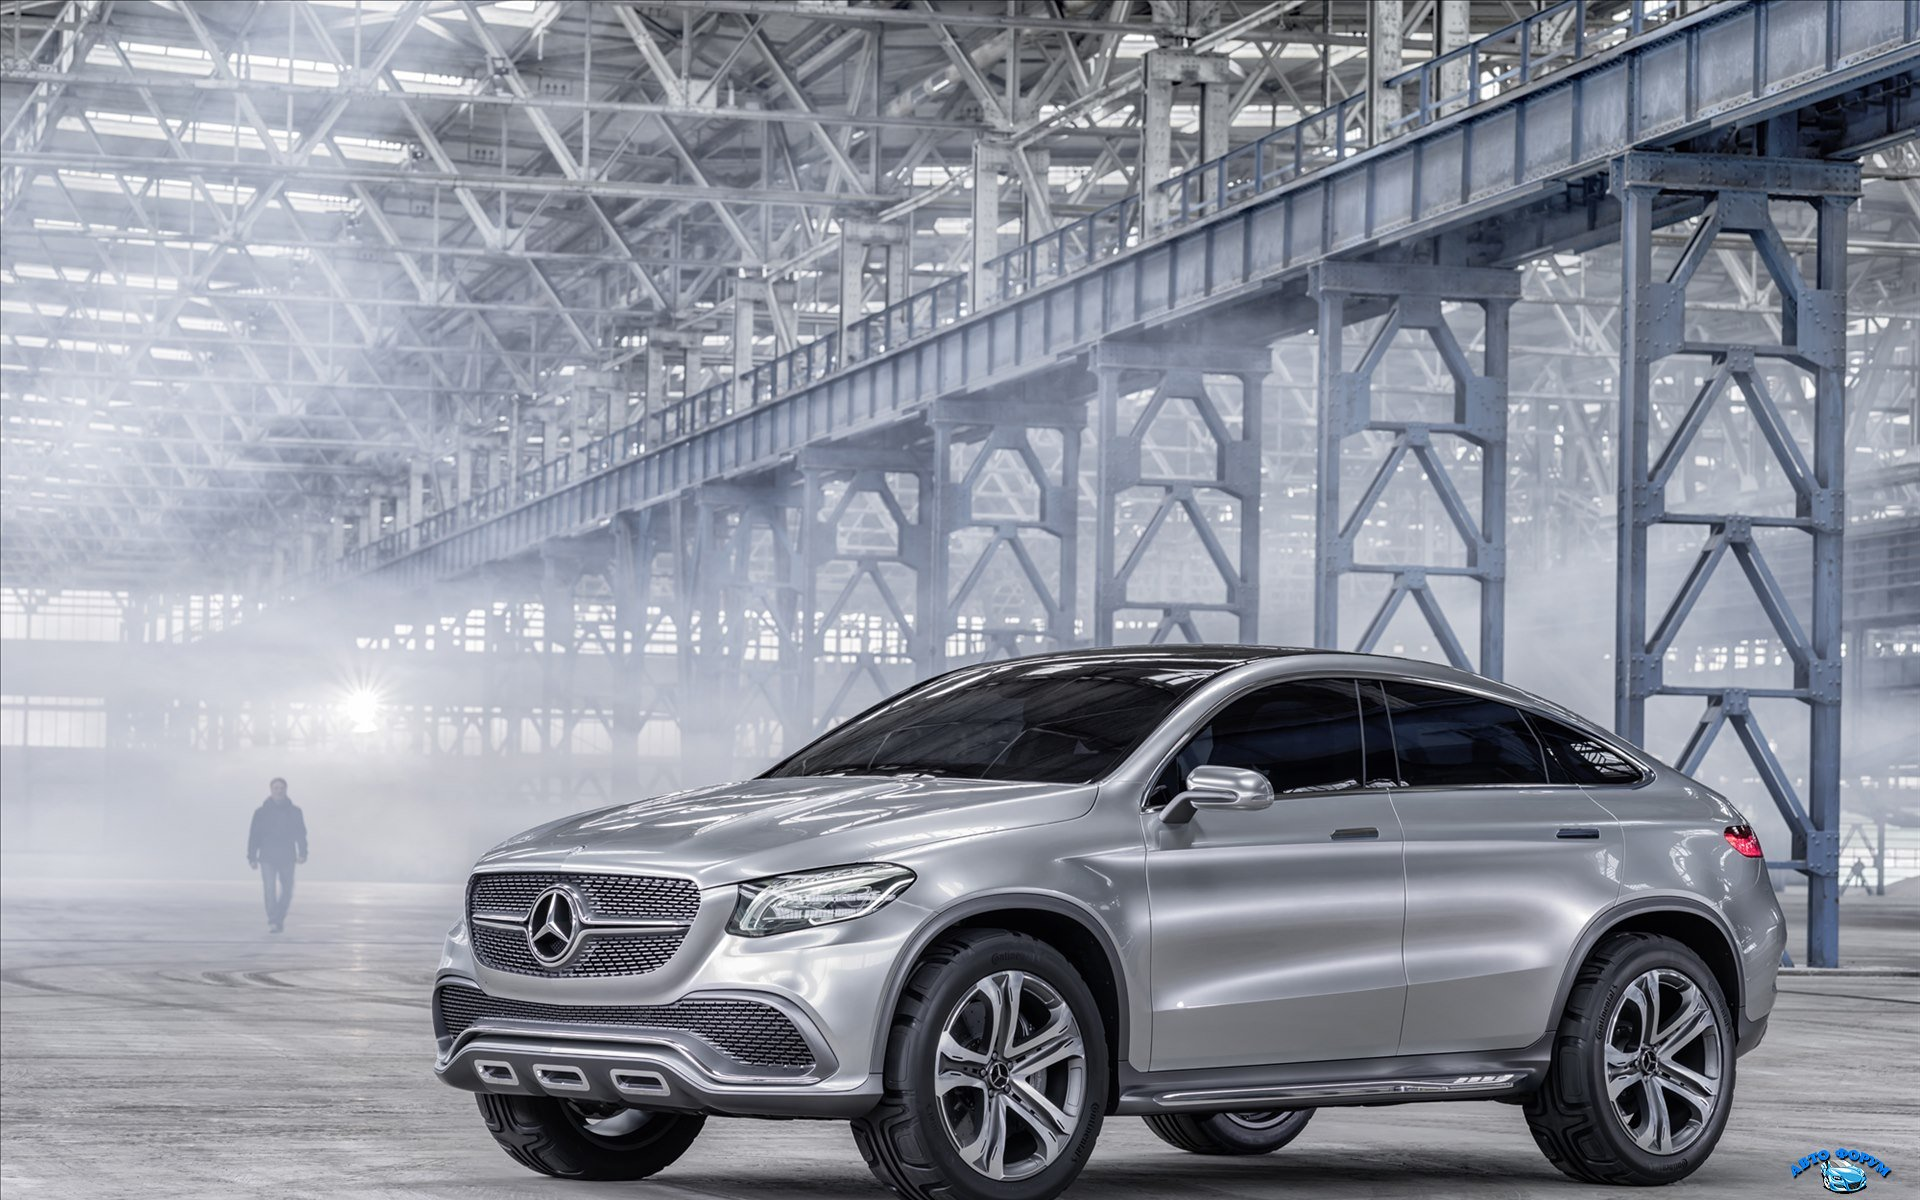 Mercedes-Benz-Coupe-SUV-Concept-2014-widescreen-14.jpg